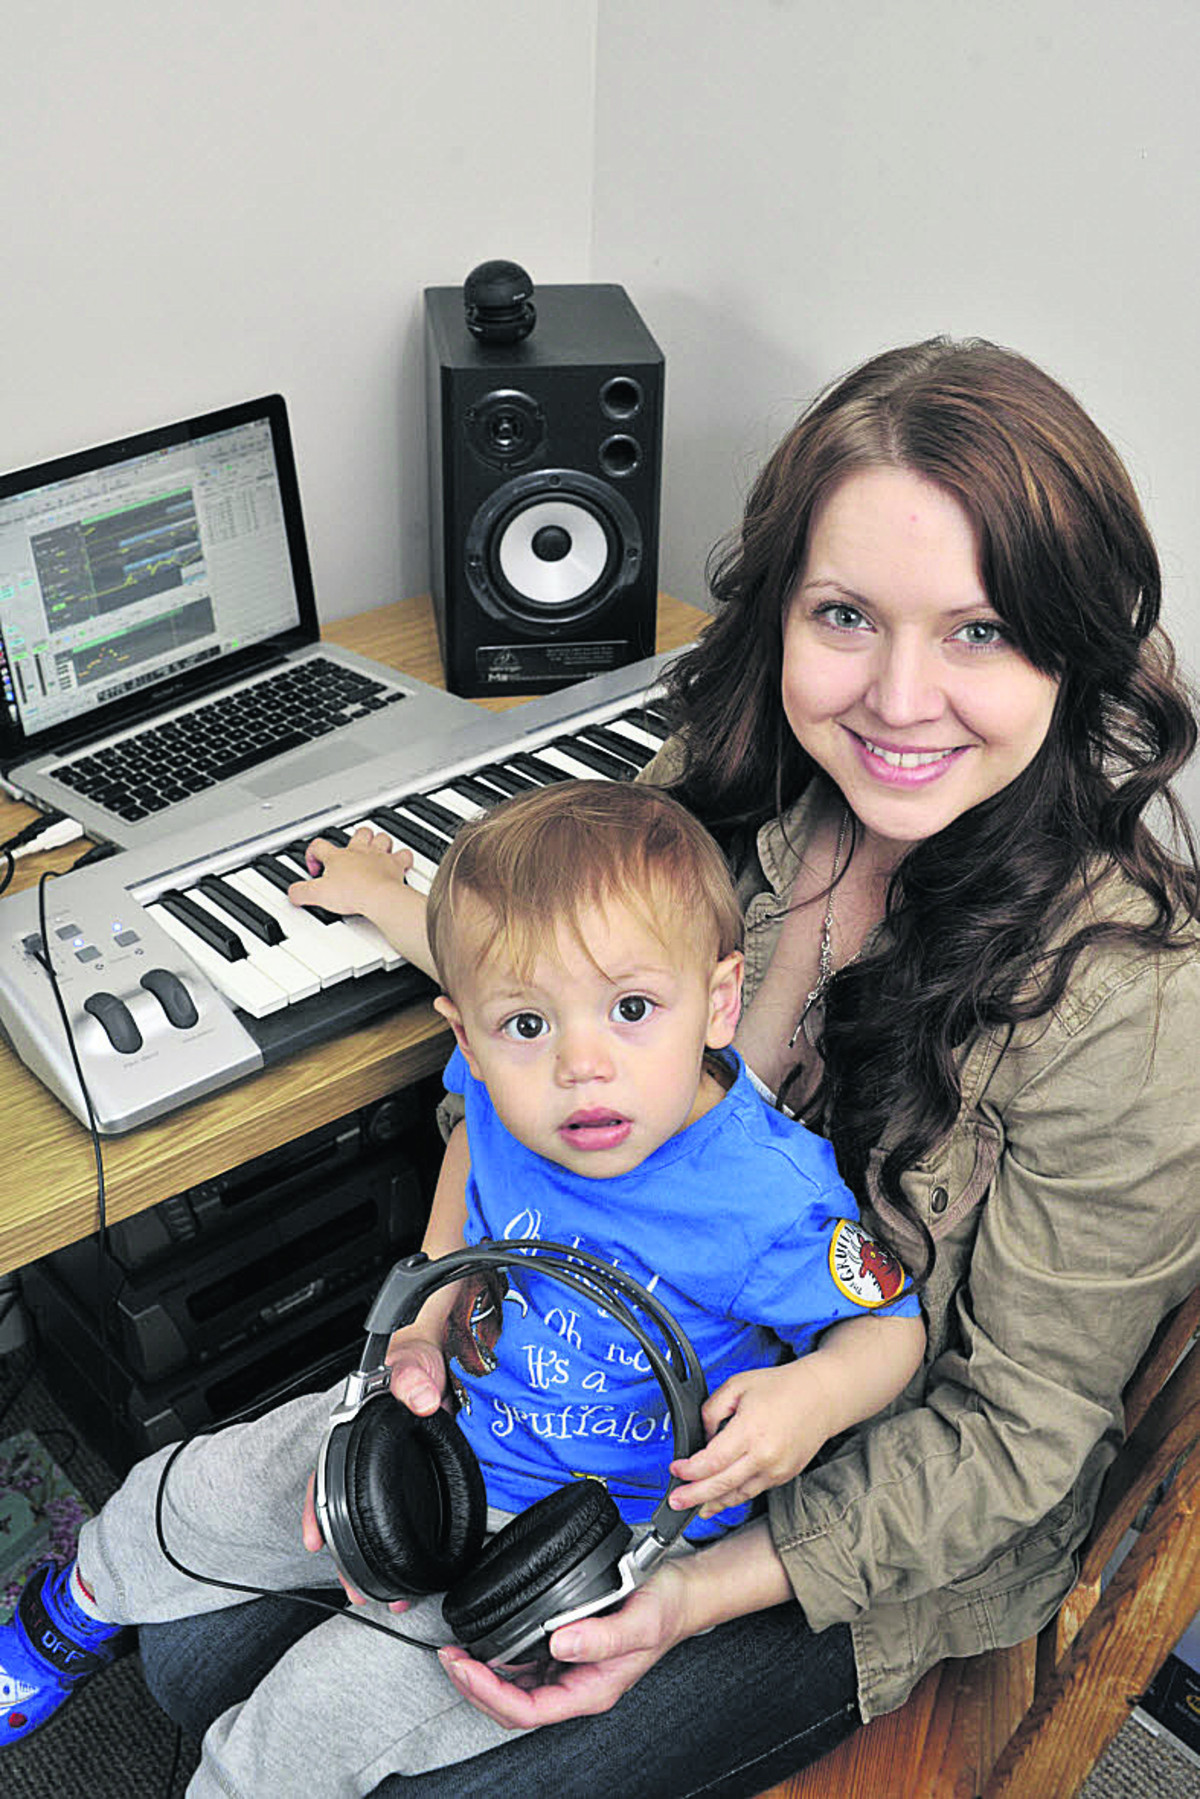 Part-time music producer Alexis Turvey of Melksham in her bedroom studio, with her son Luis Connors